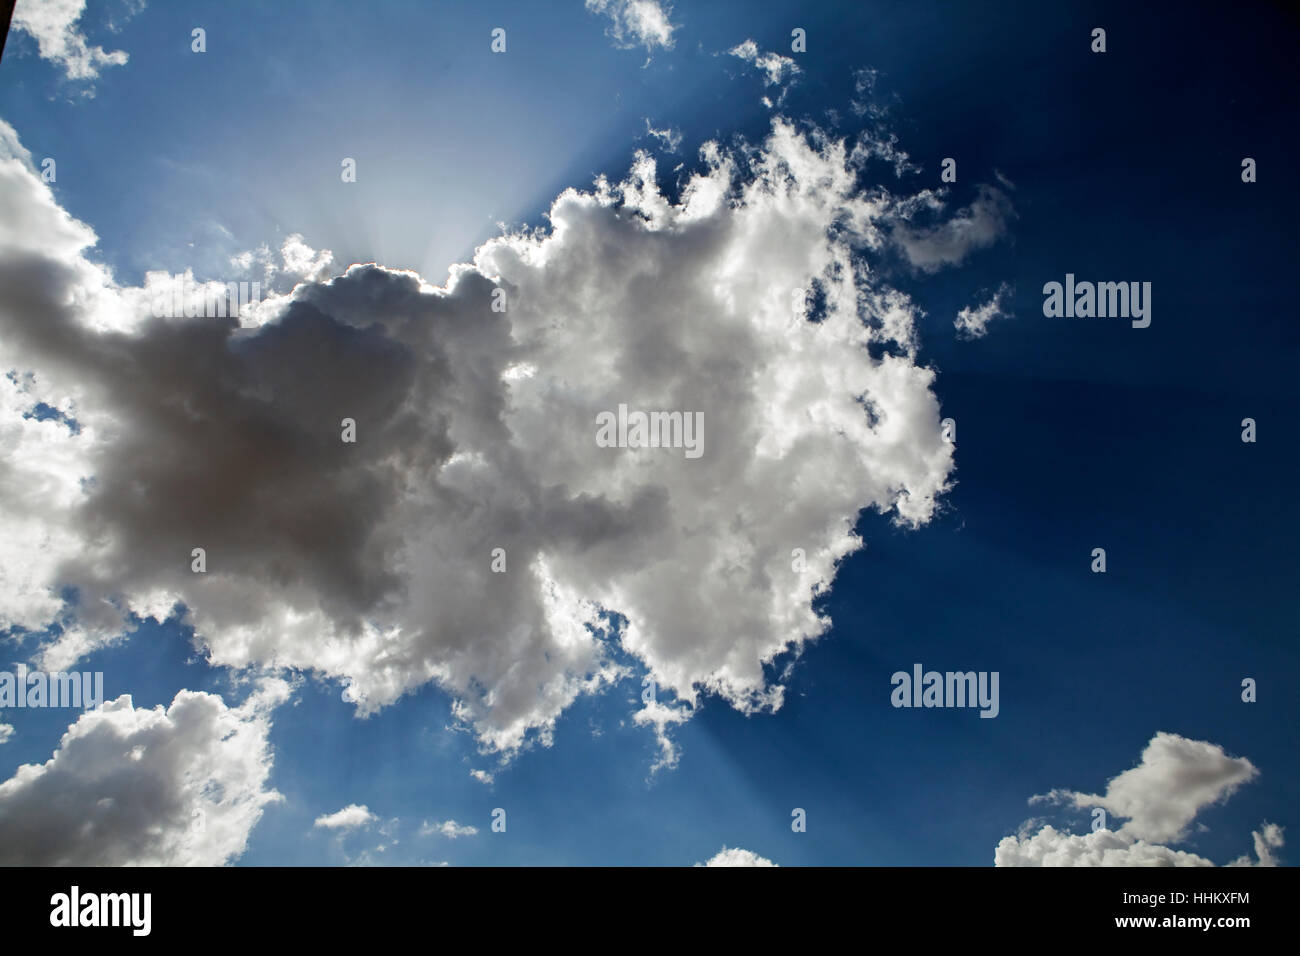 silver lining in the sky a story The silver lining news story the sln mission  blue sky with clouds background  daily silver line soliloquizing.